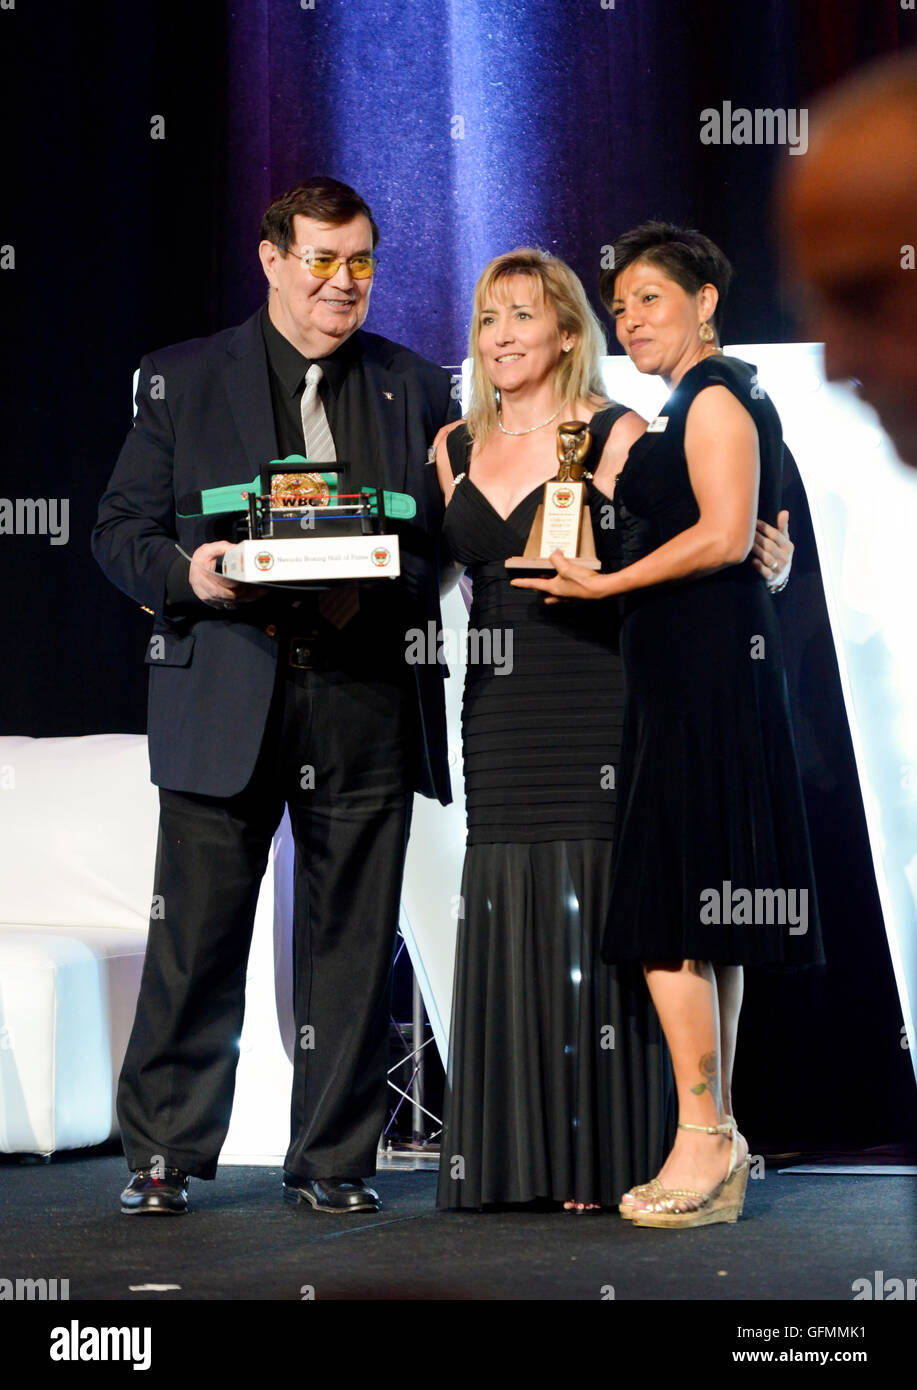 Las Vegas, Nevada, USA. 30th July, 2016. Christy Martin Former Women Welterweight World Champion honored at the - Stock Image